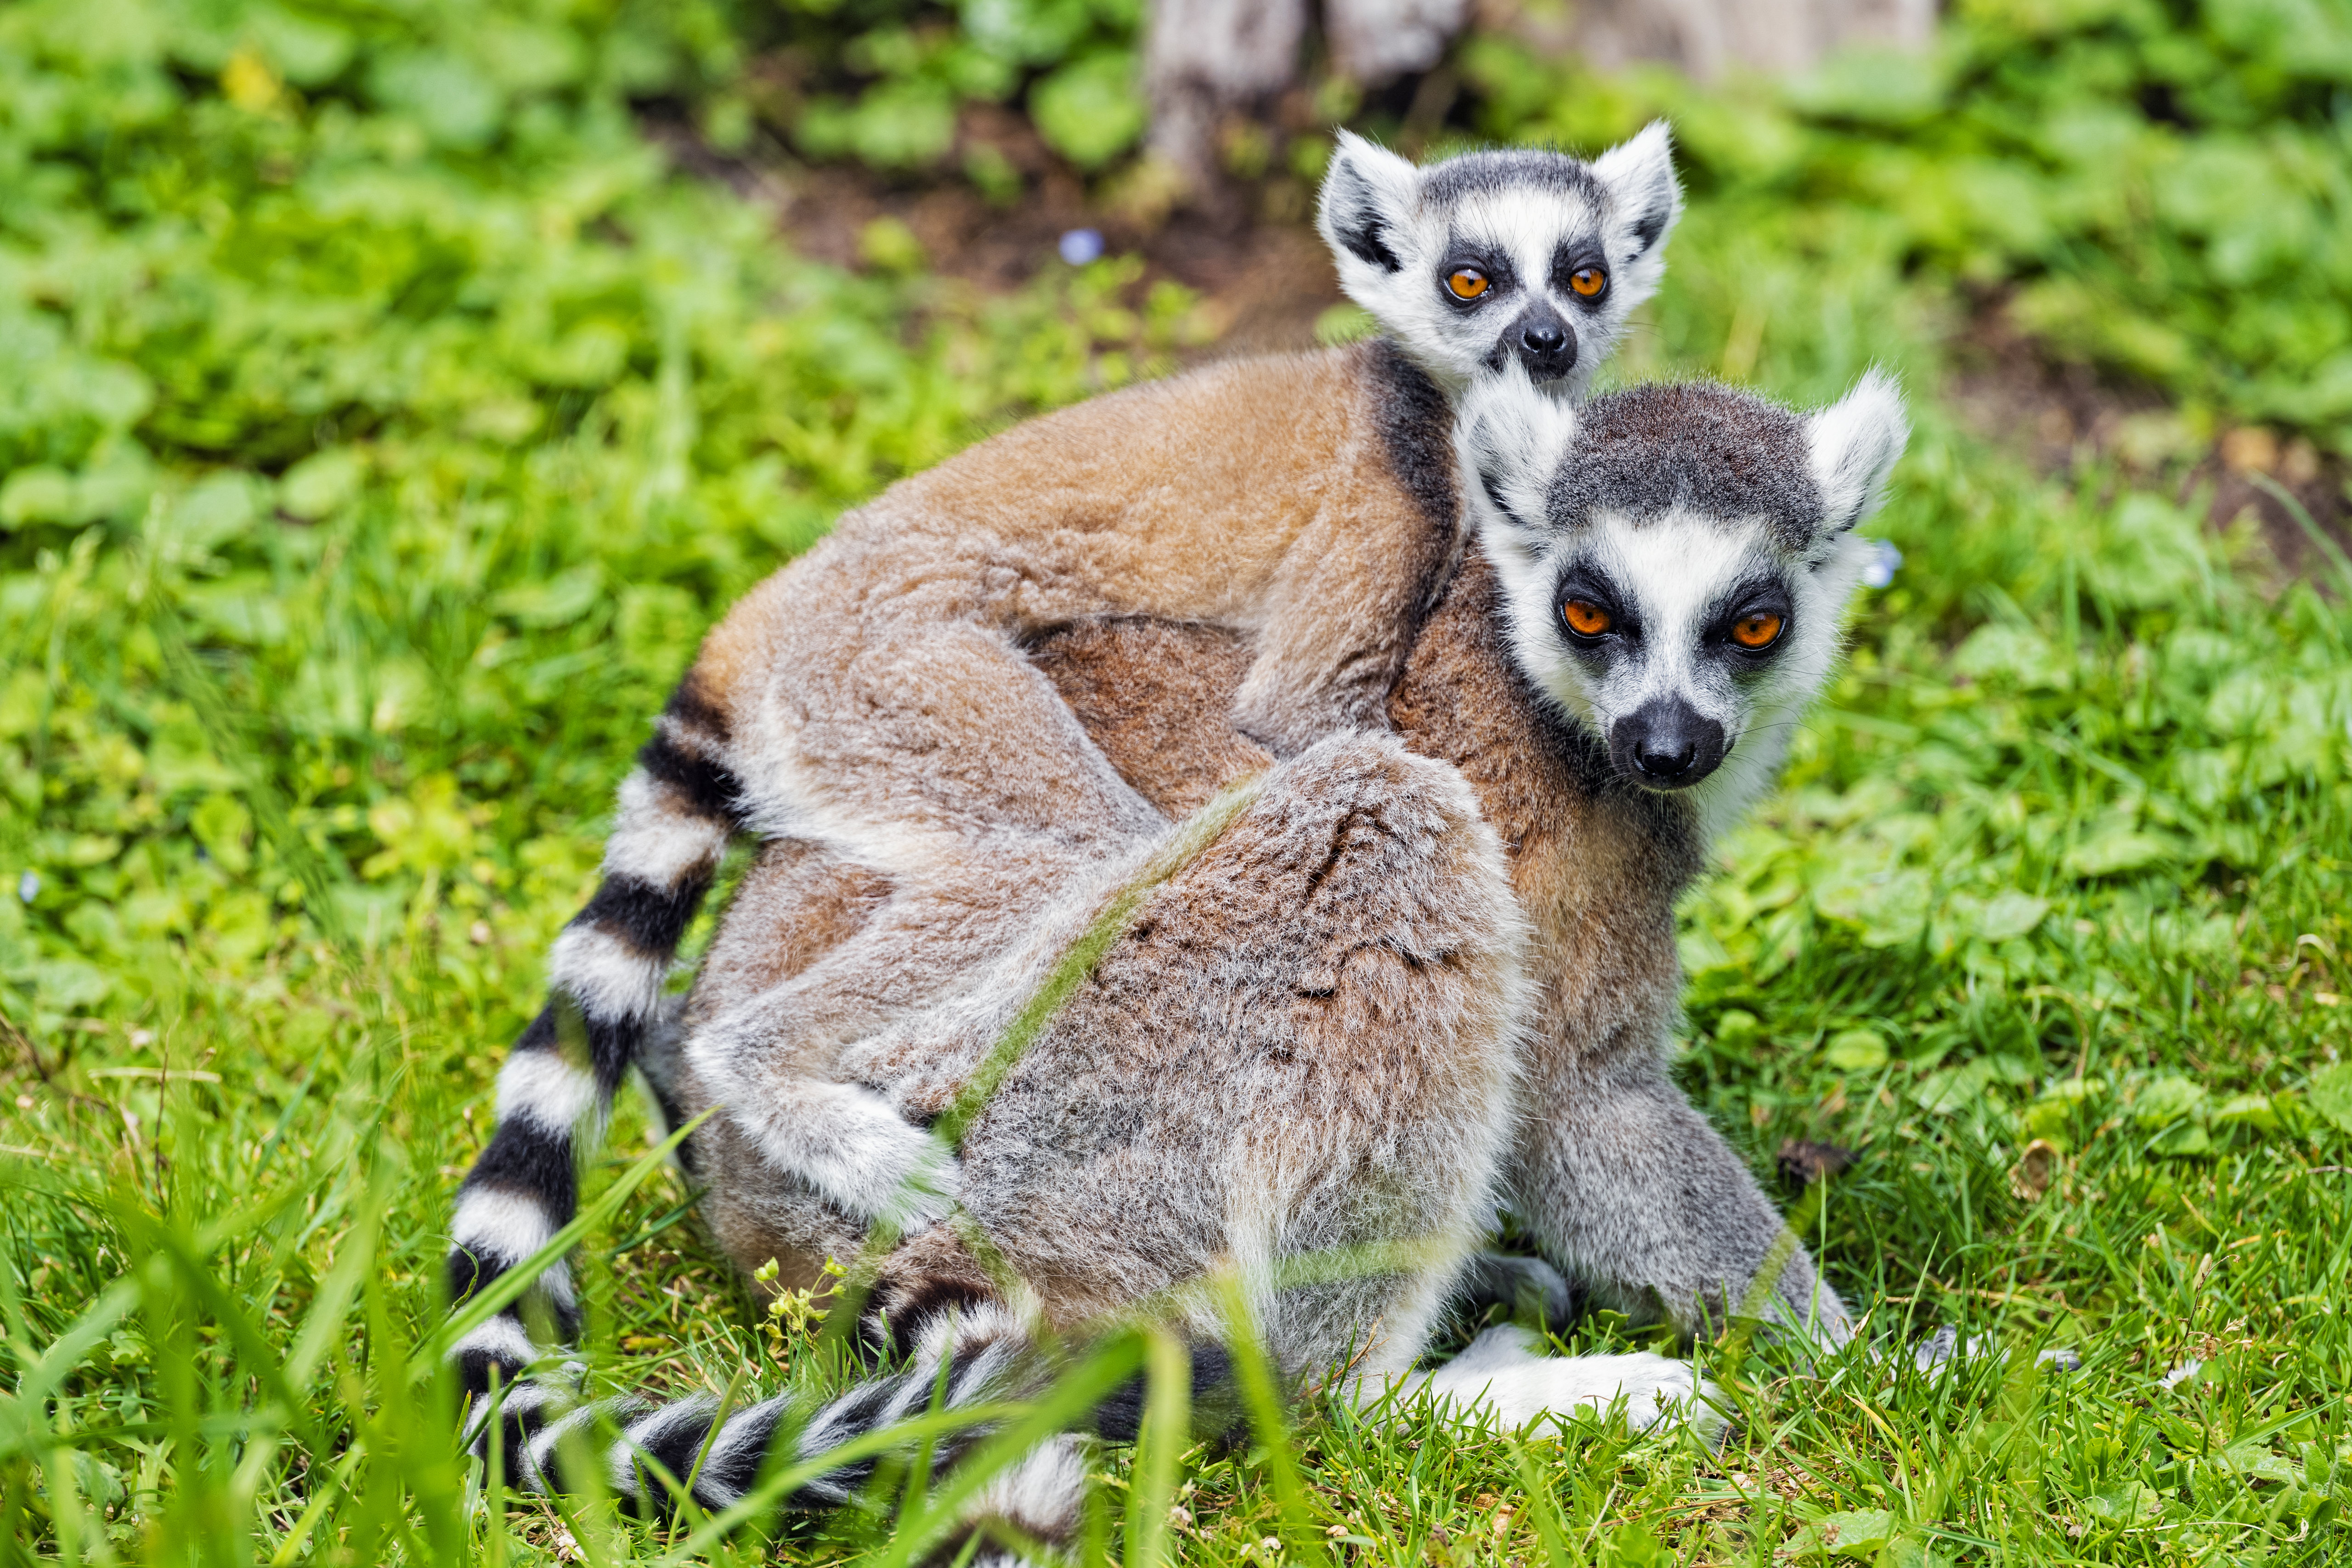 154650 download wallpaper Animals, Lemur, Young, Joey, Animal, Family screensavers and pictures for free